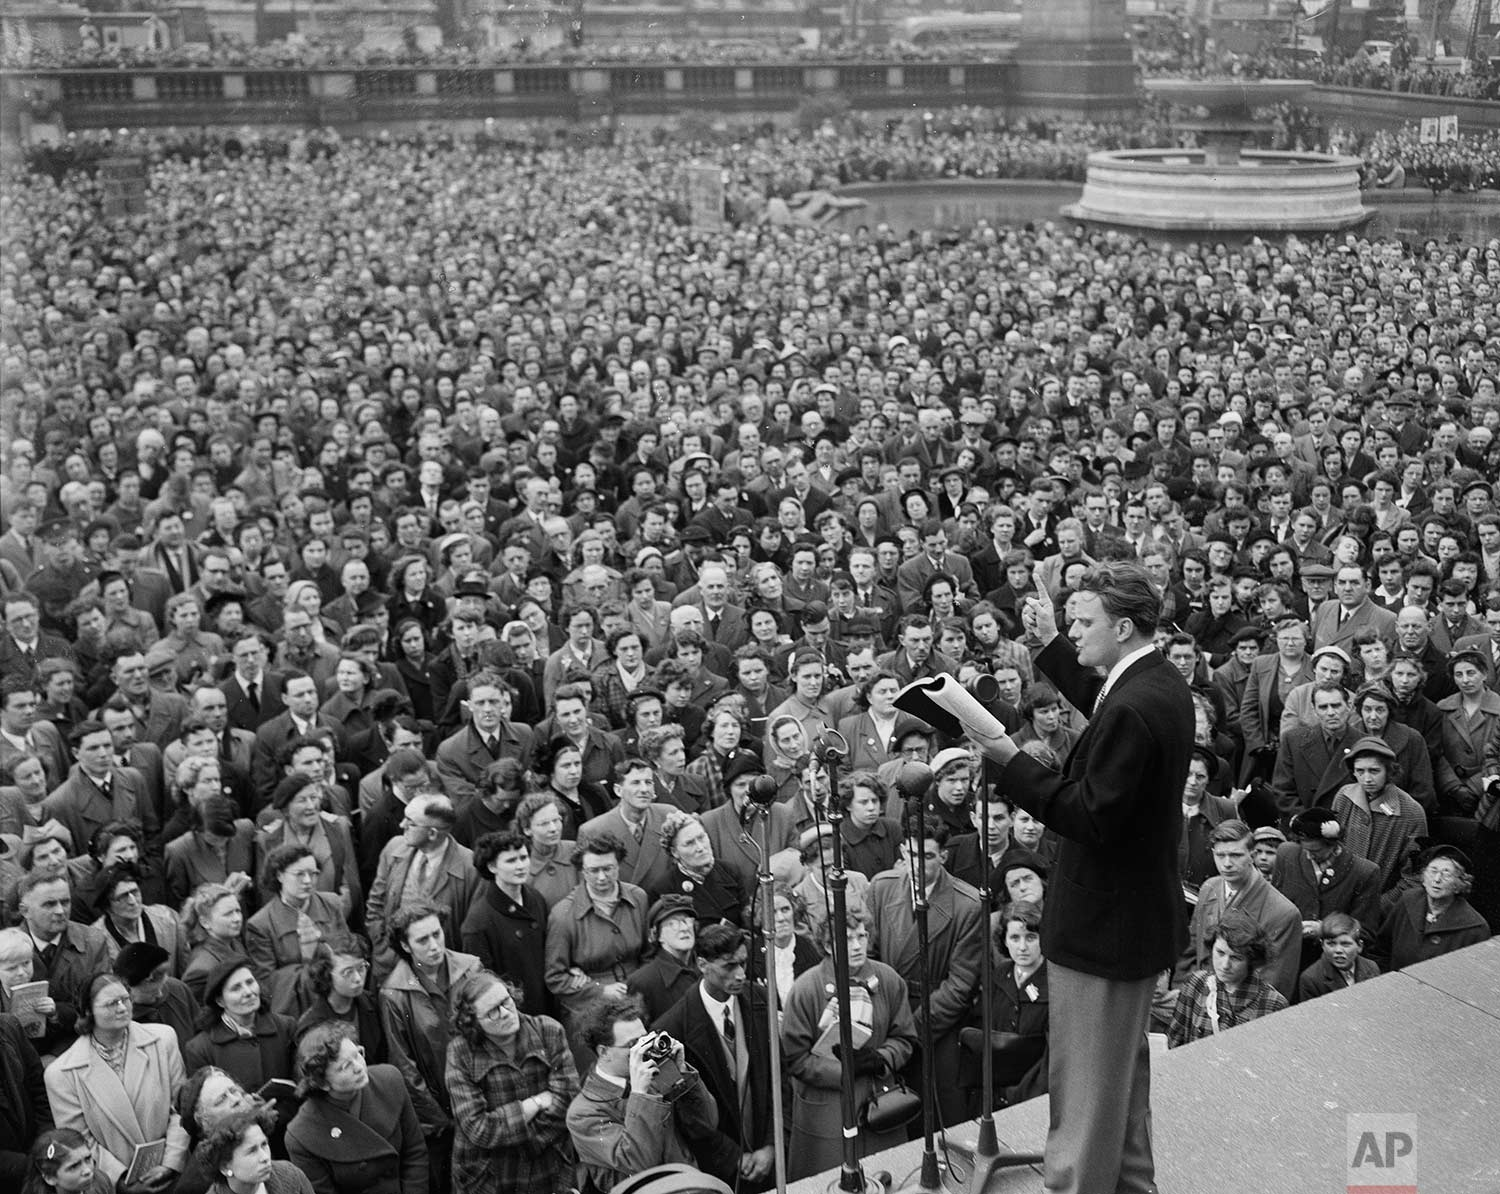 American evangelist Billy Graham reads passages from the Bible to a large, rapt audience in Trafalgar Square, London, April 12, 1954.(AP Photo)